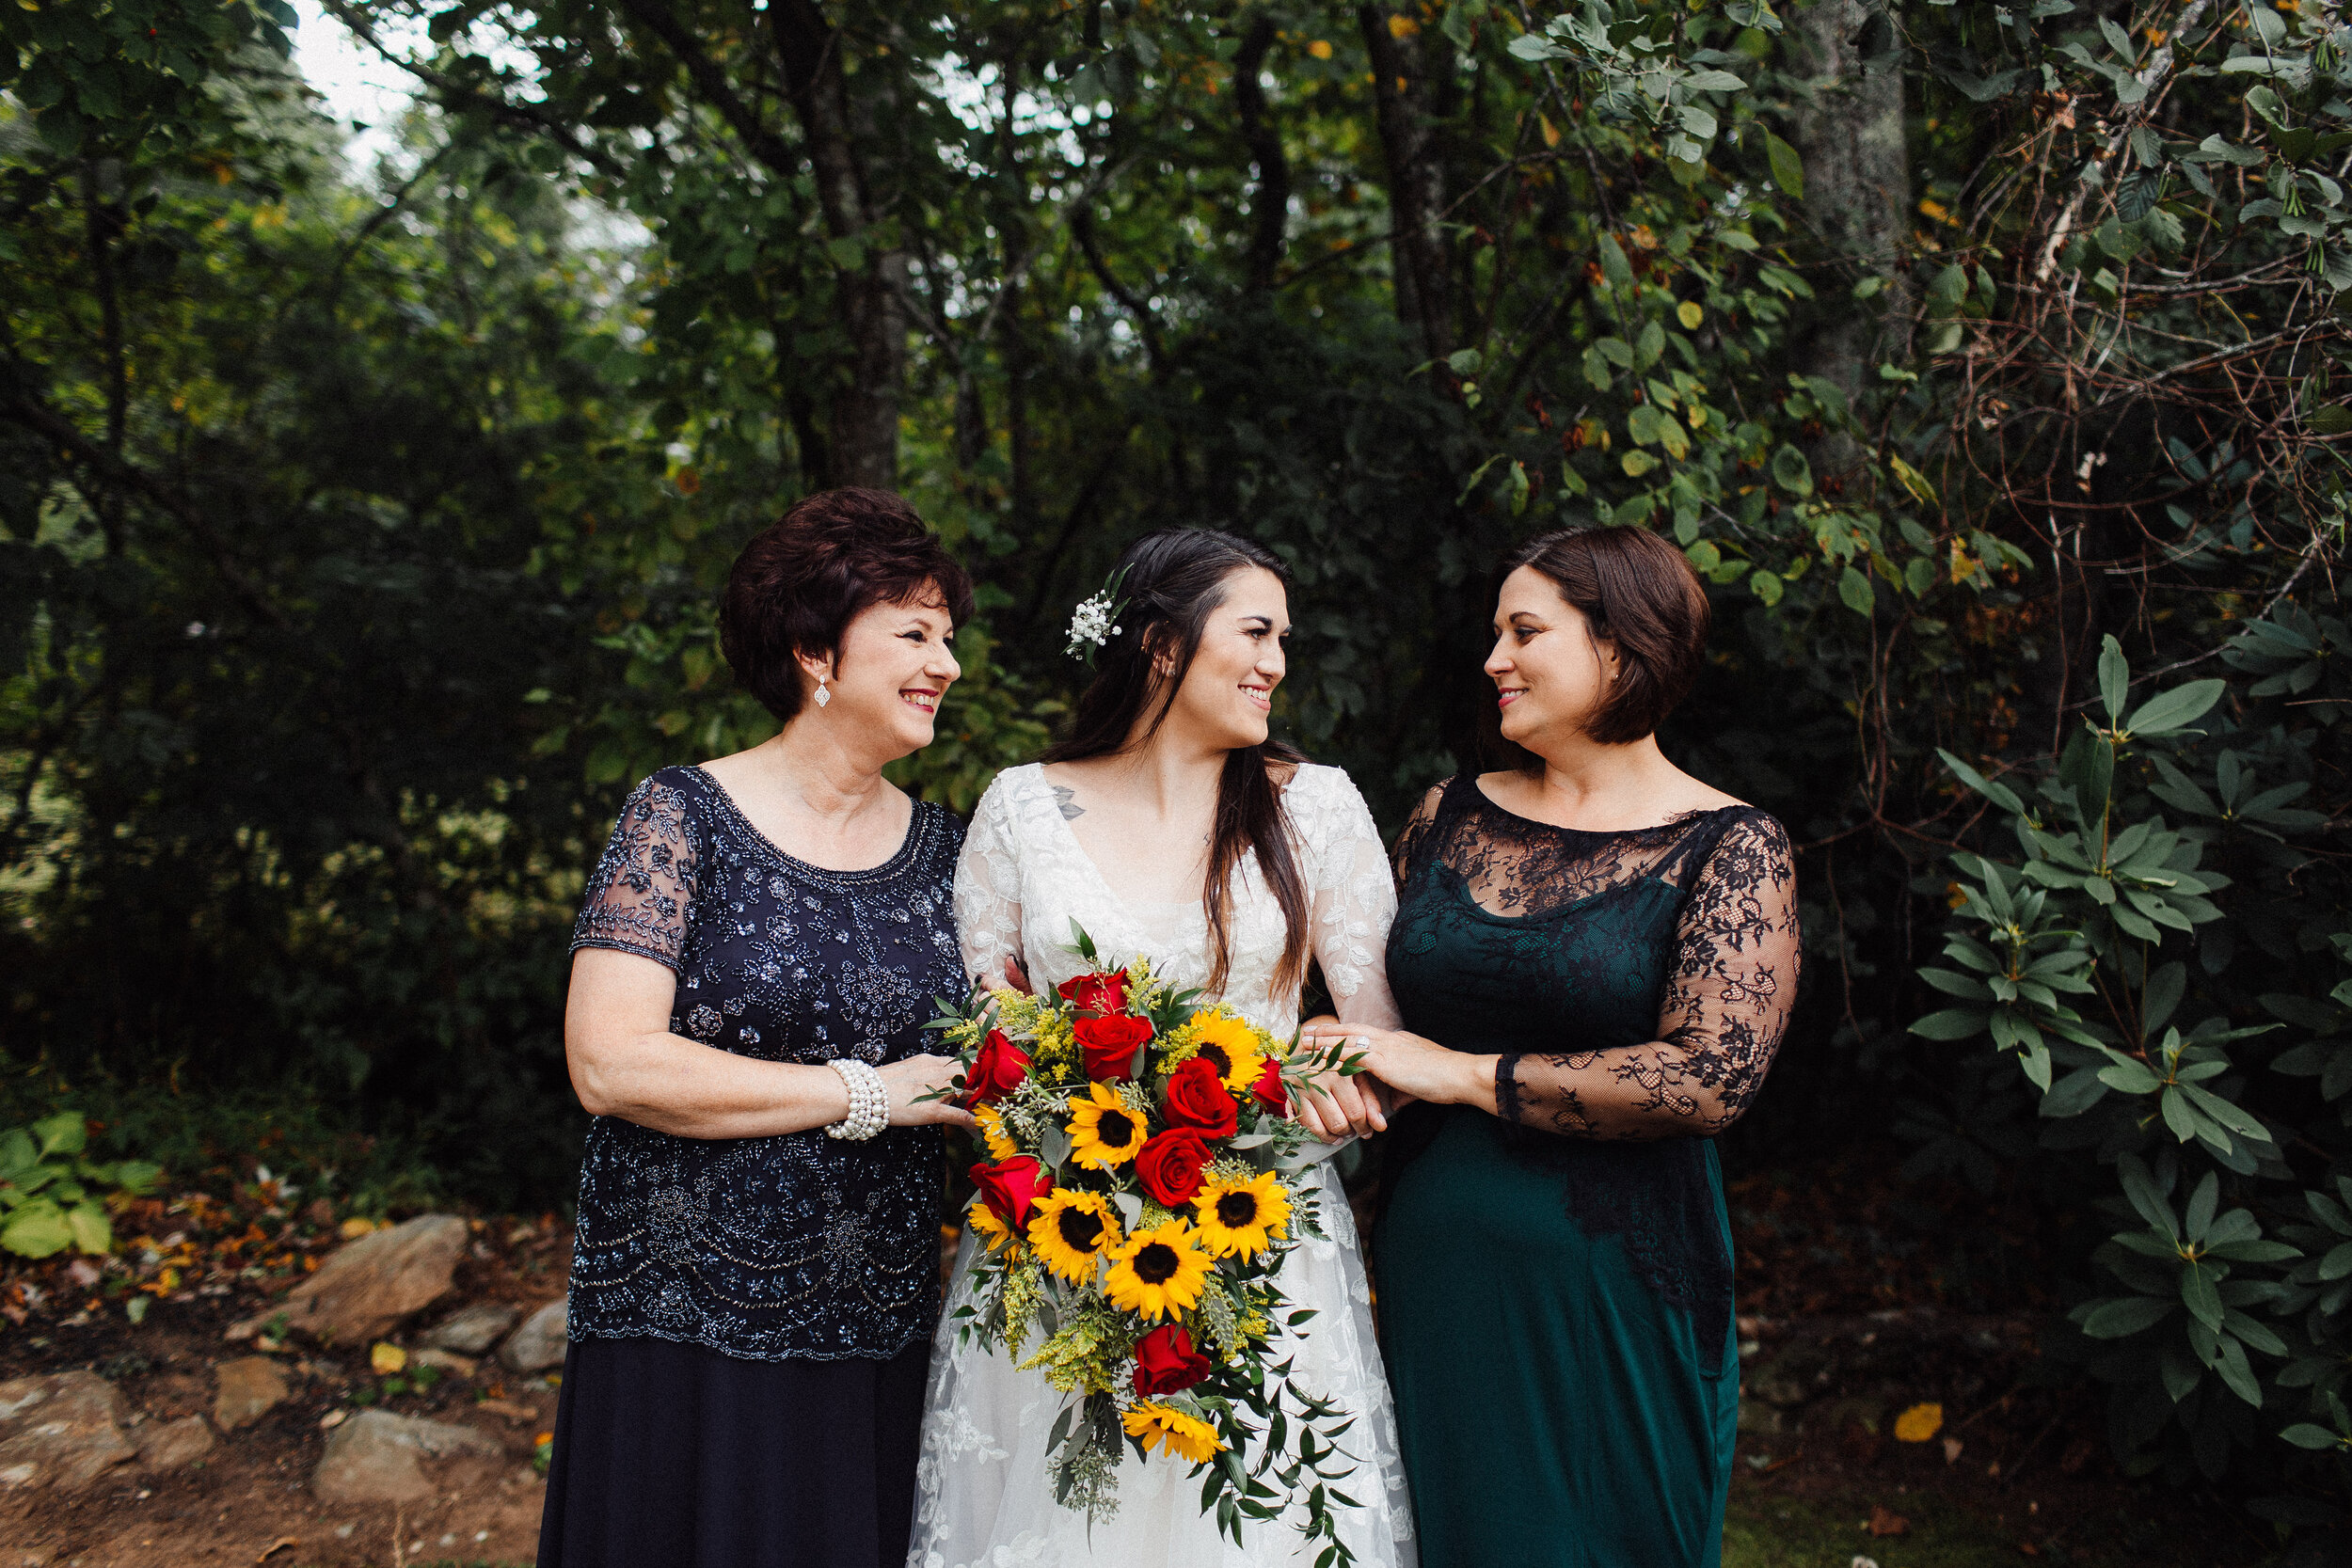 atlanta_wedding_photographers_georgia_same_sex_rustic_barn_farm_lesbian_weddings_inclusive_1226.jpg